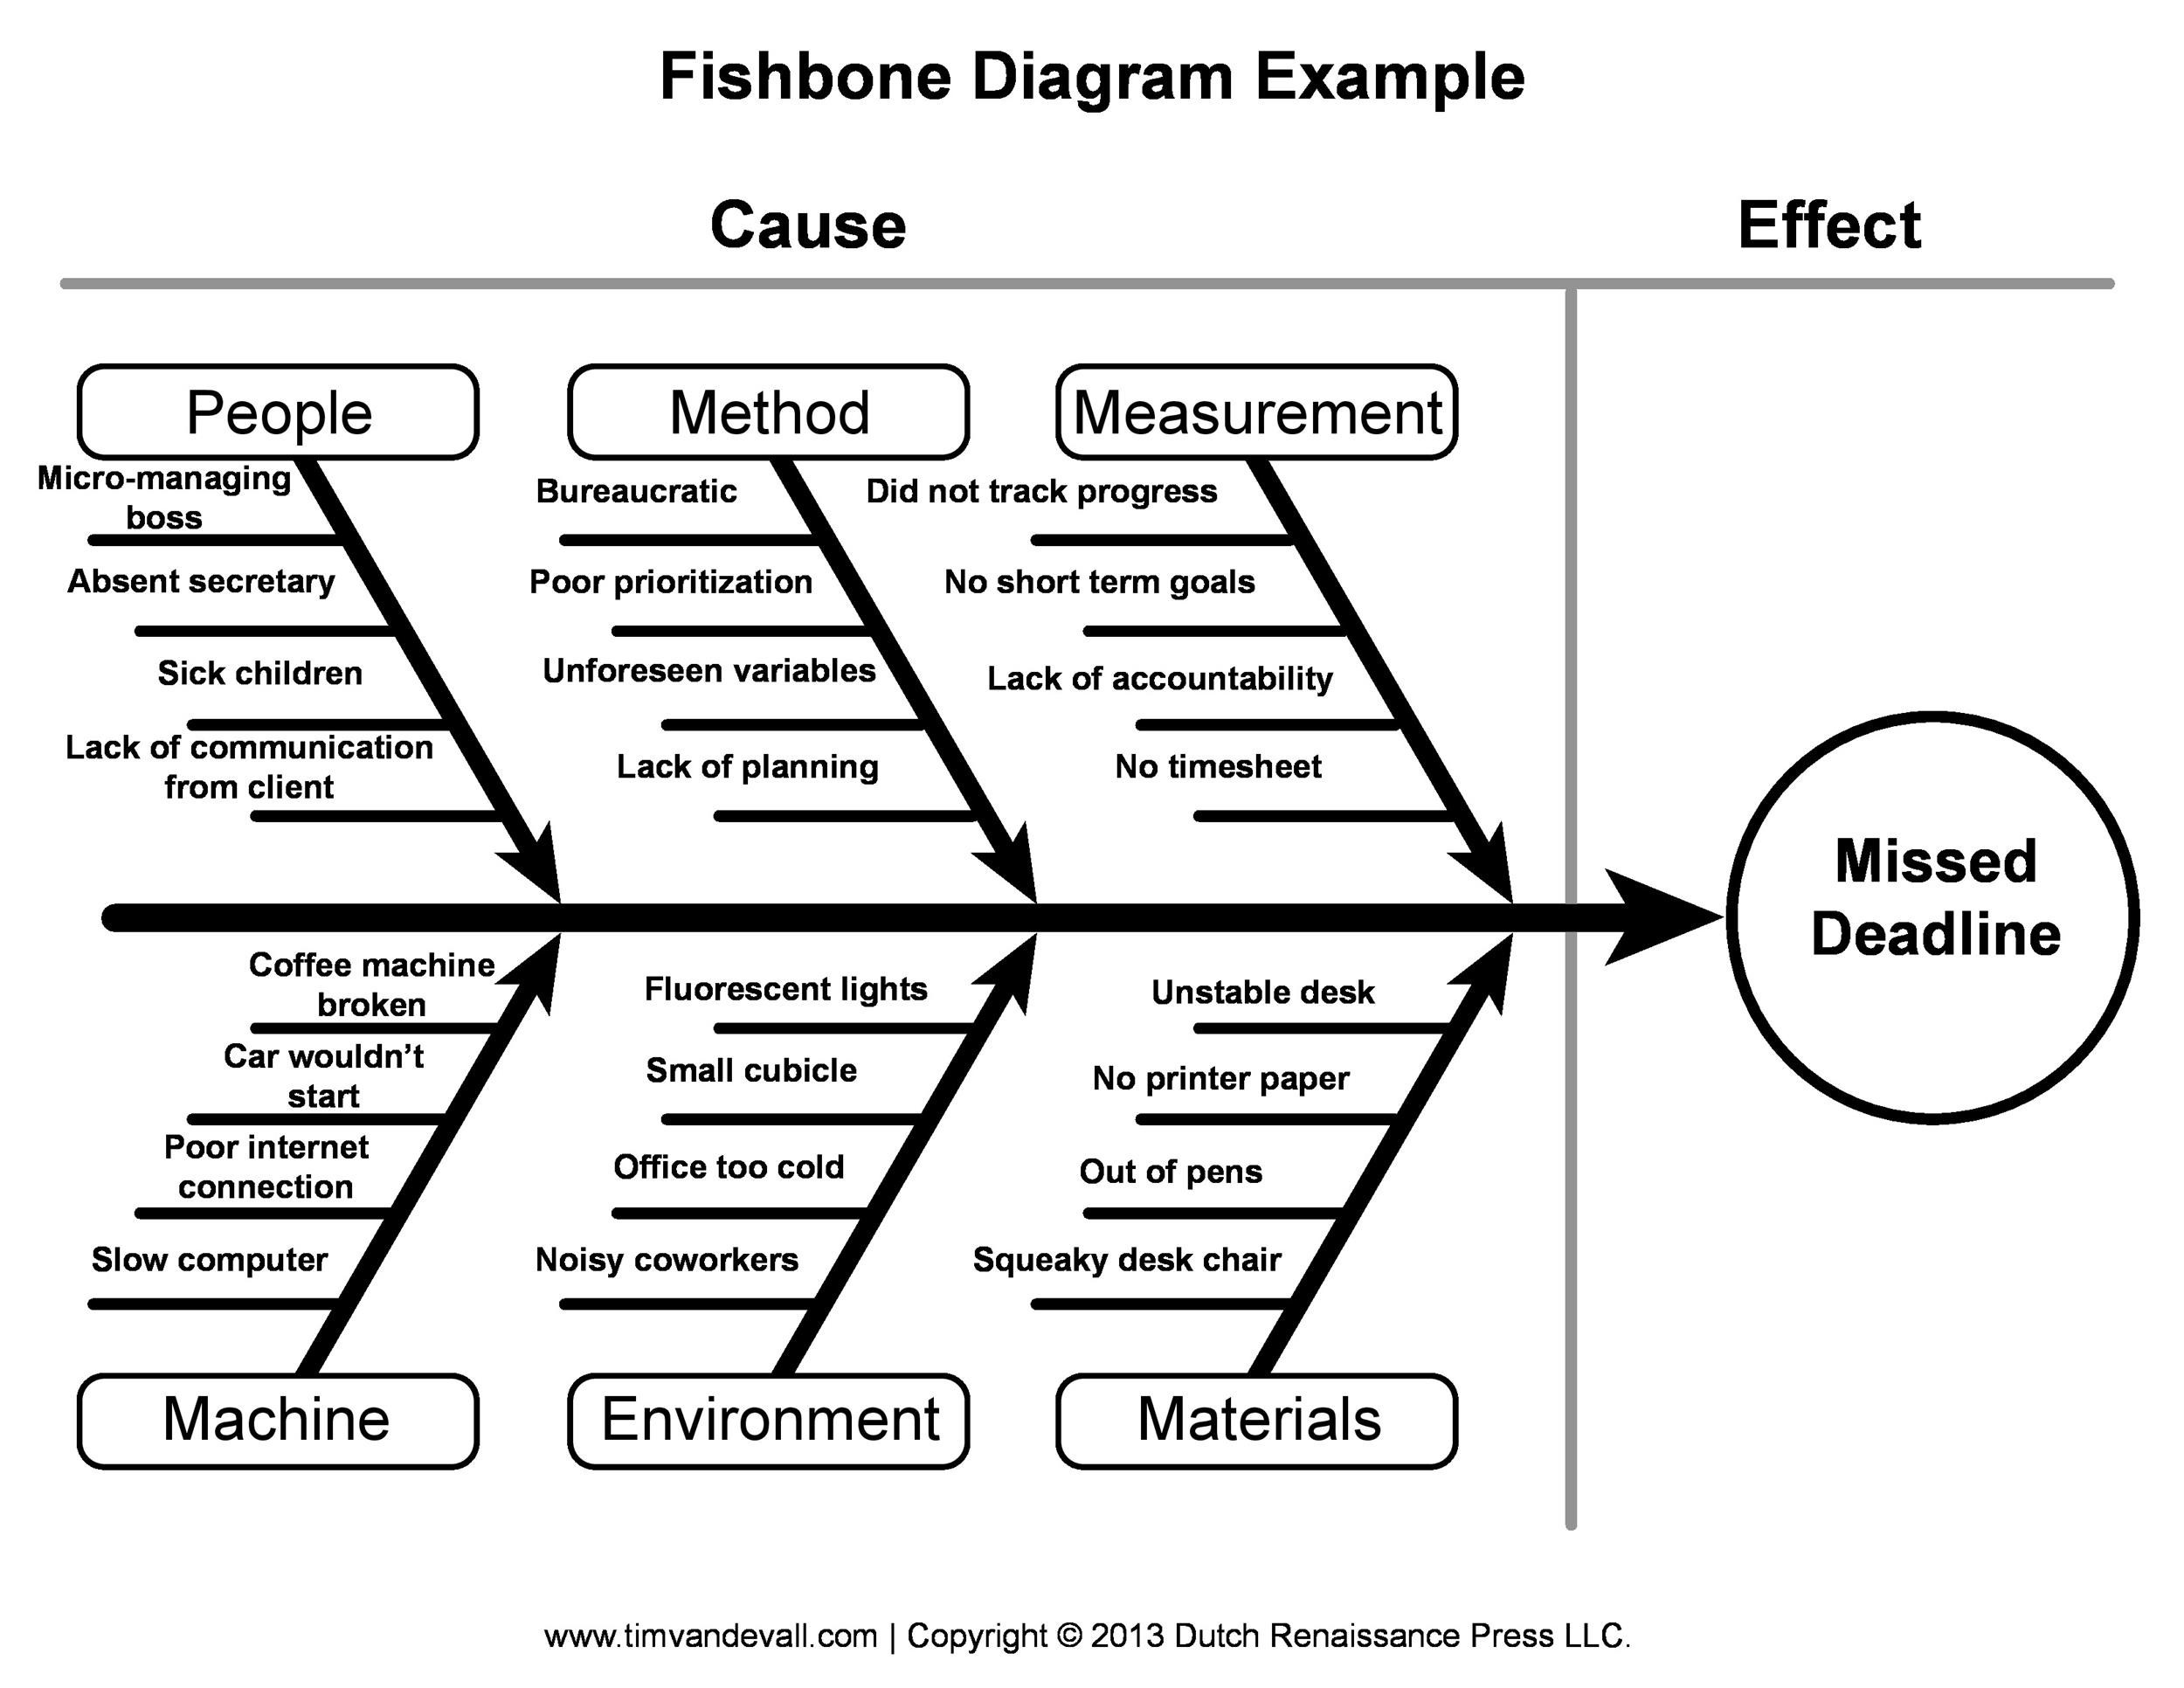 43 Great Fishbone Diagram Templates & Examples [Word, Excel]